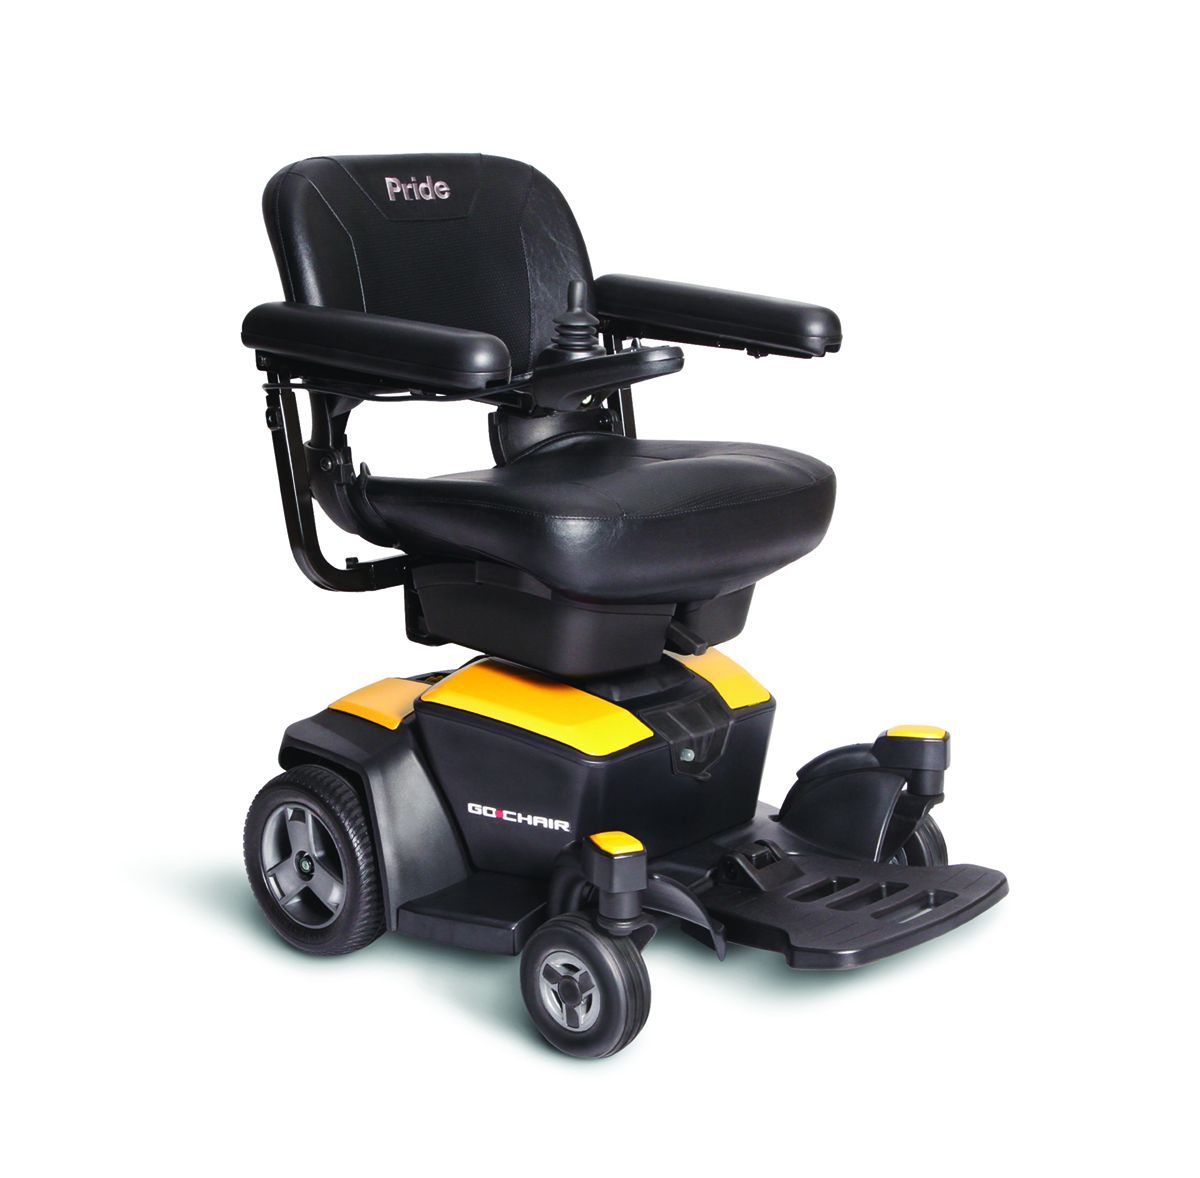 Go Chair powerchair in yellow from Pride Mobility